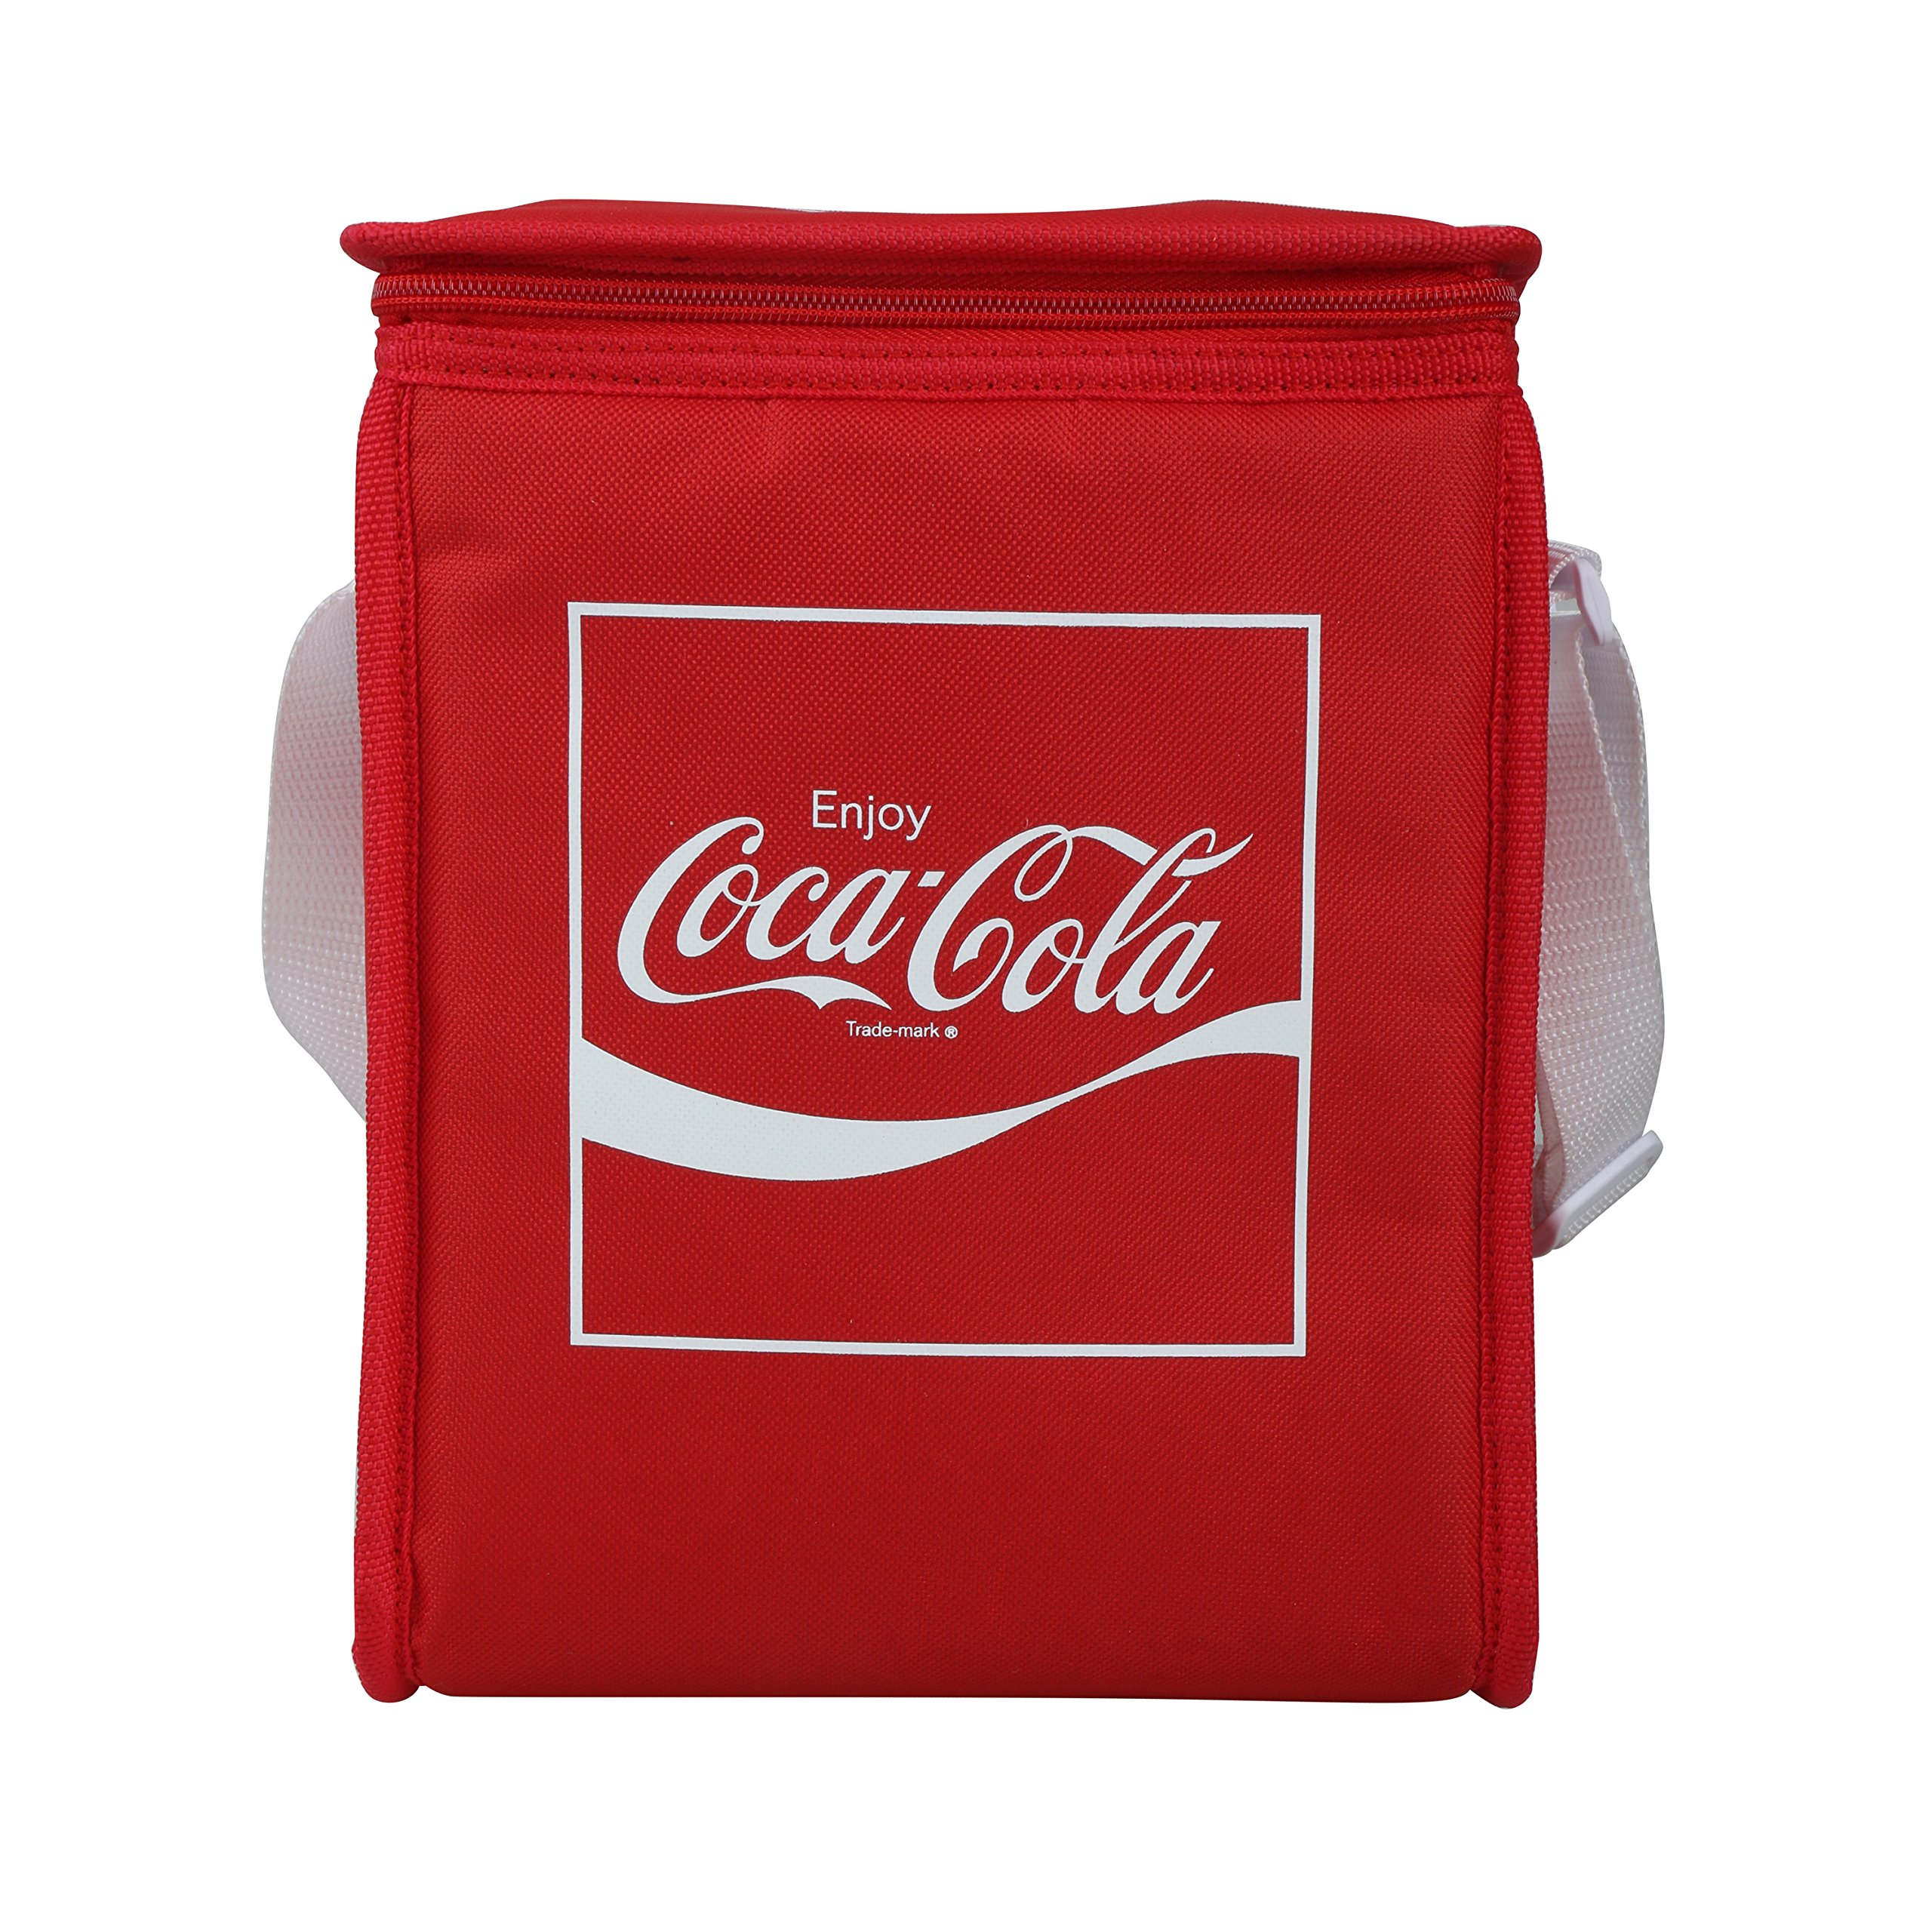 Coca-Cola 86-110 Soft Sided Cooler/Lunch Bag